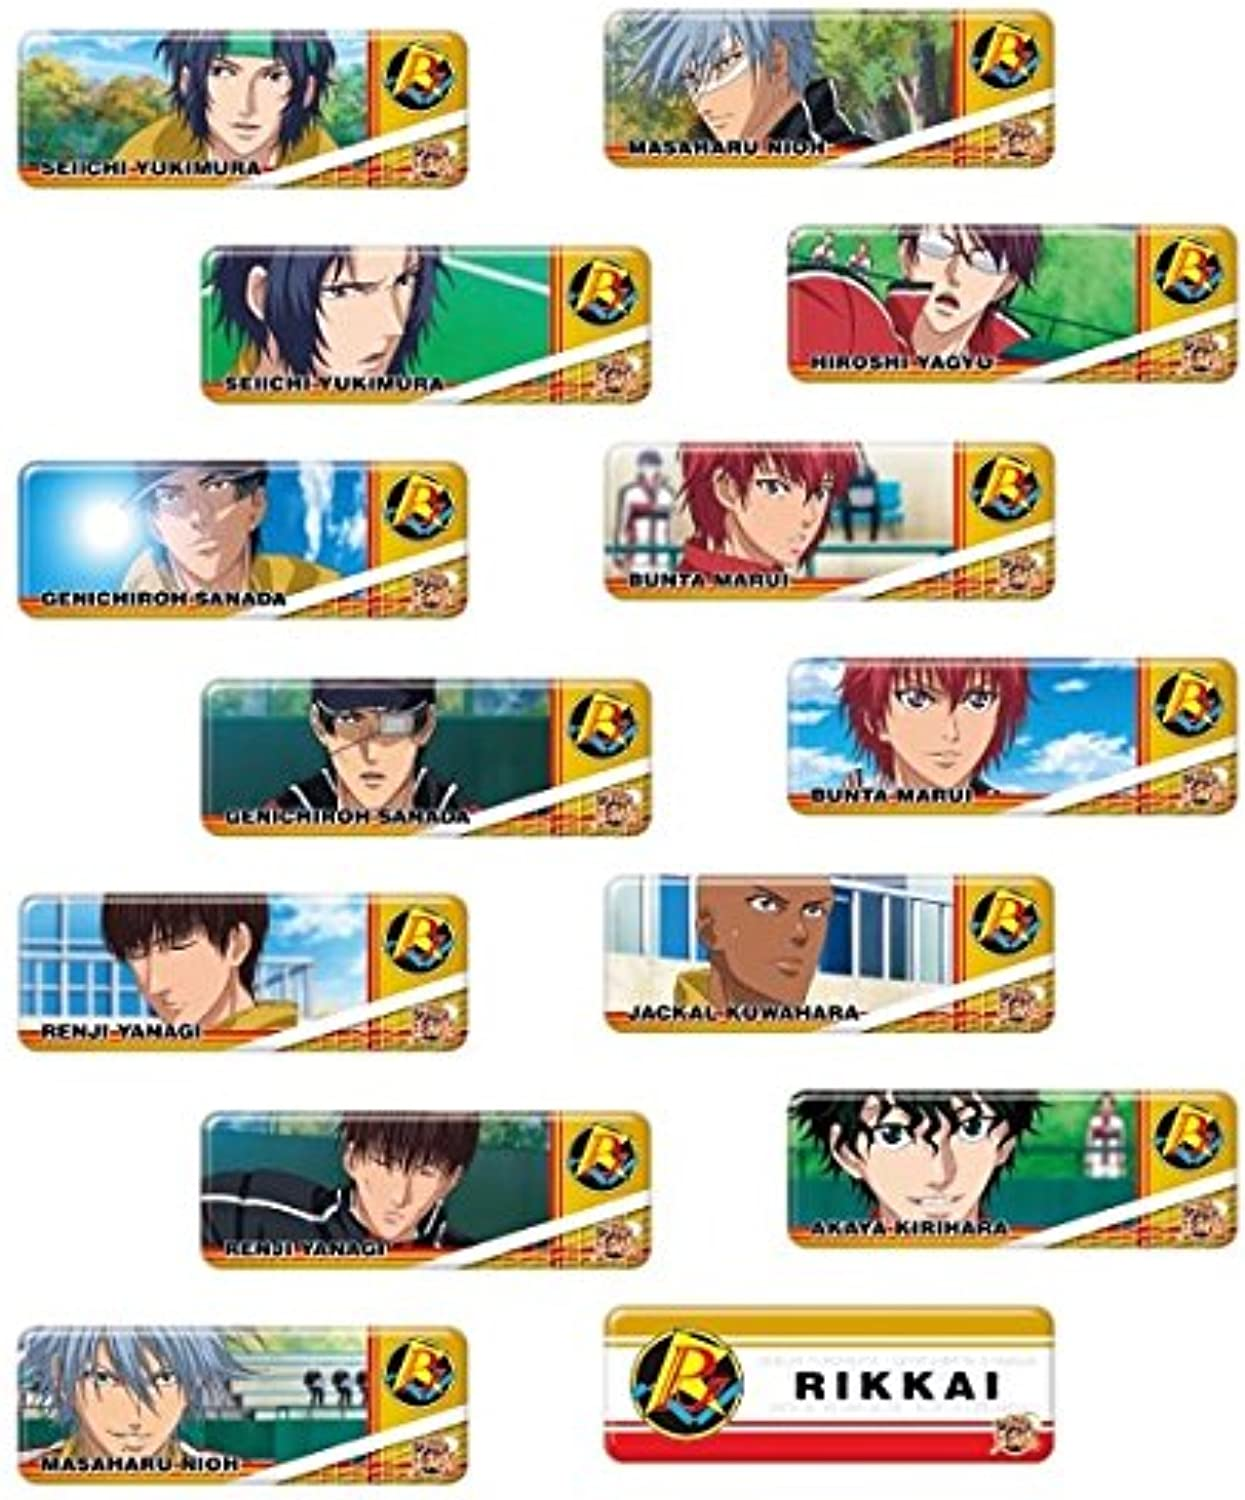 Long Kang Prince of badge collection new tennis Rikkai BOX commodity 1BOX = 14 pieces, all 14 types